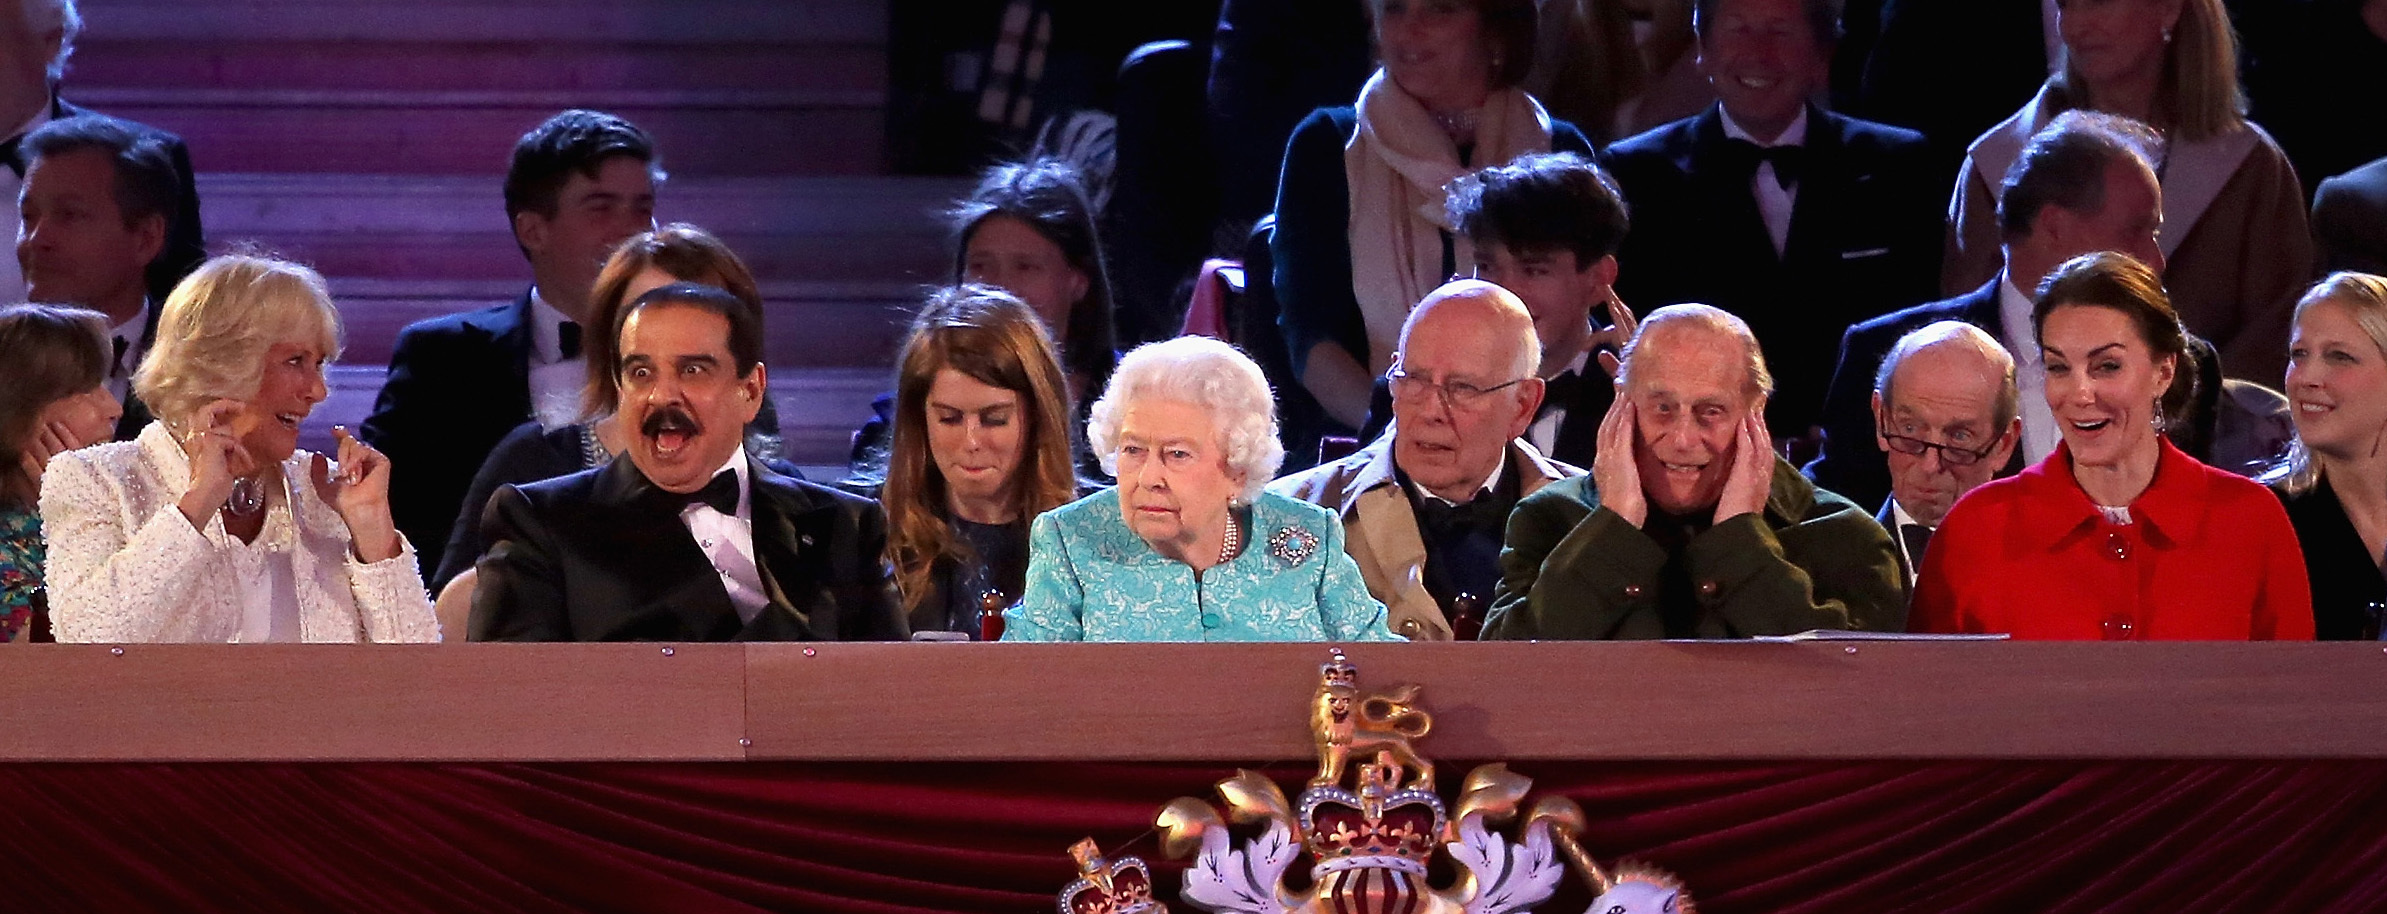 the queen 90th birthday celebrations